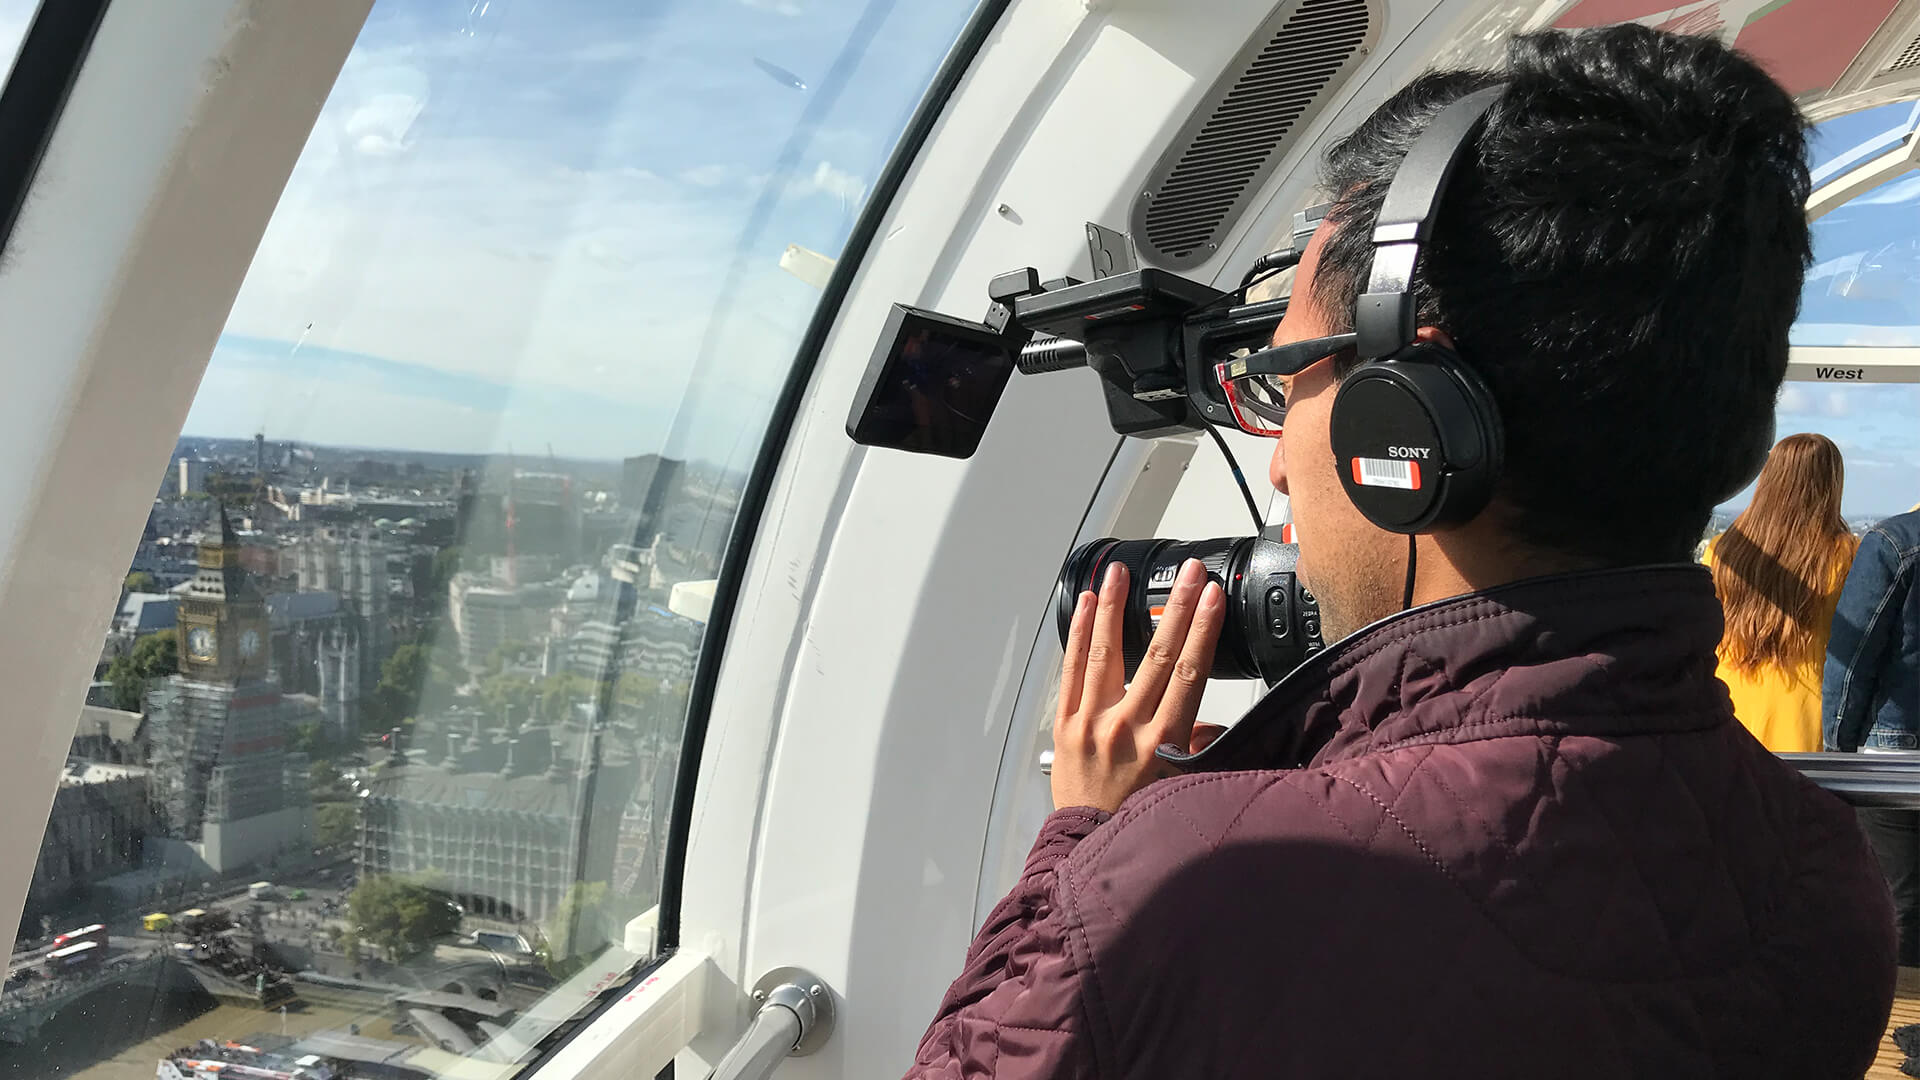 London eye pod filming with camera looking at stage entertainment